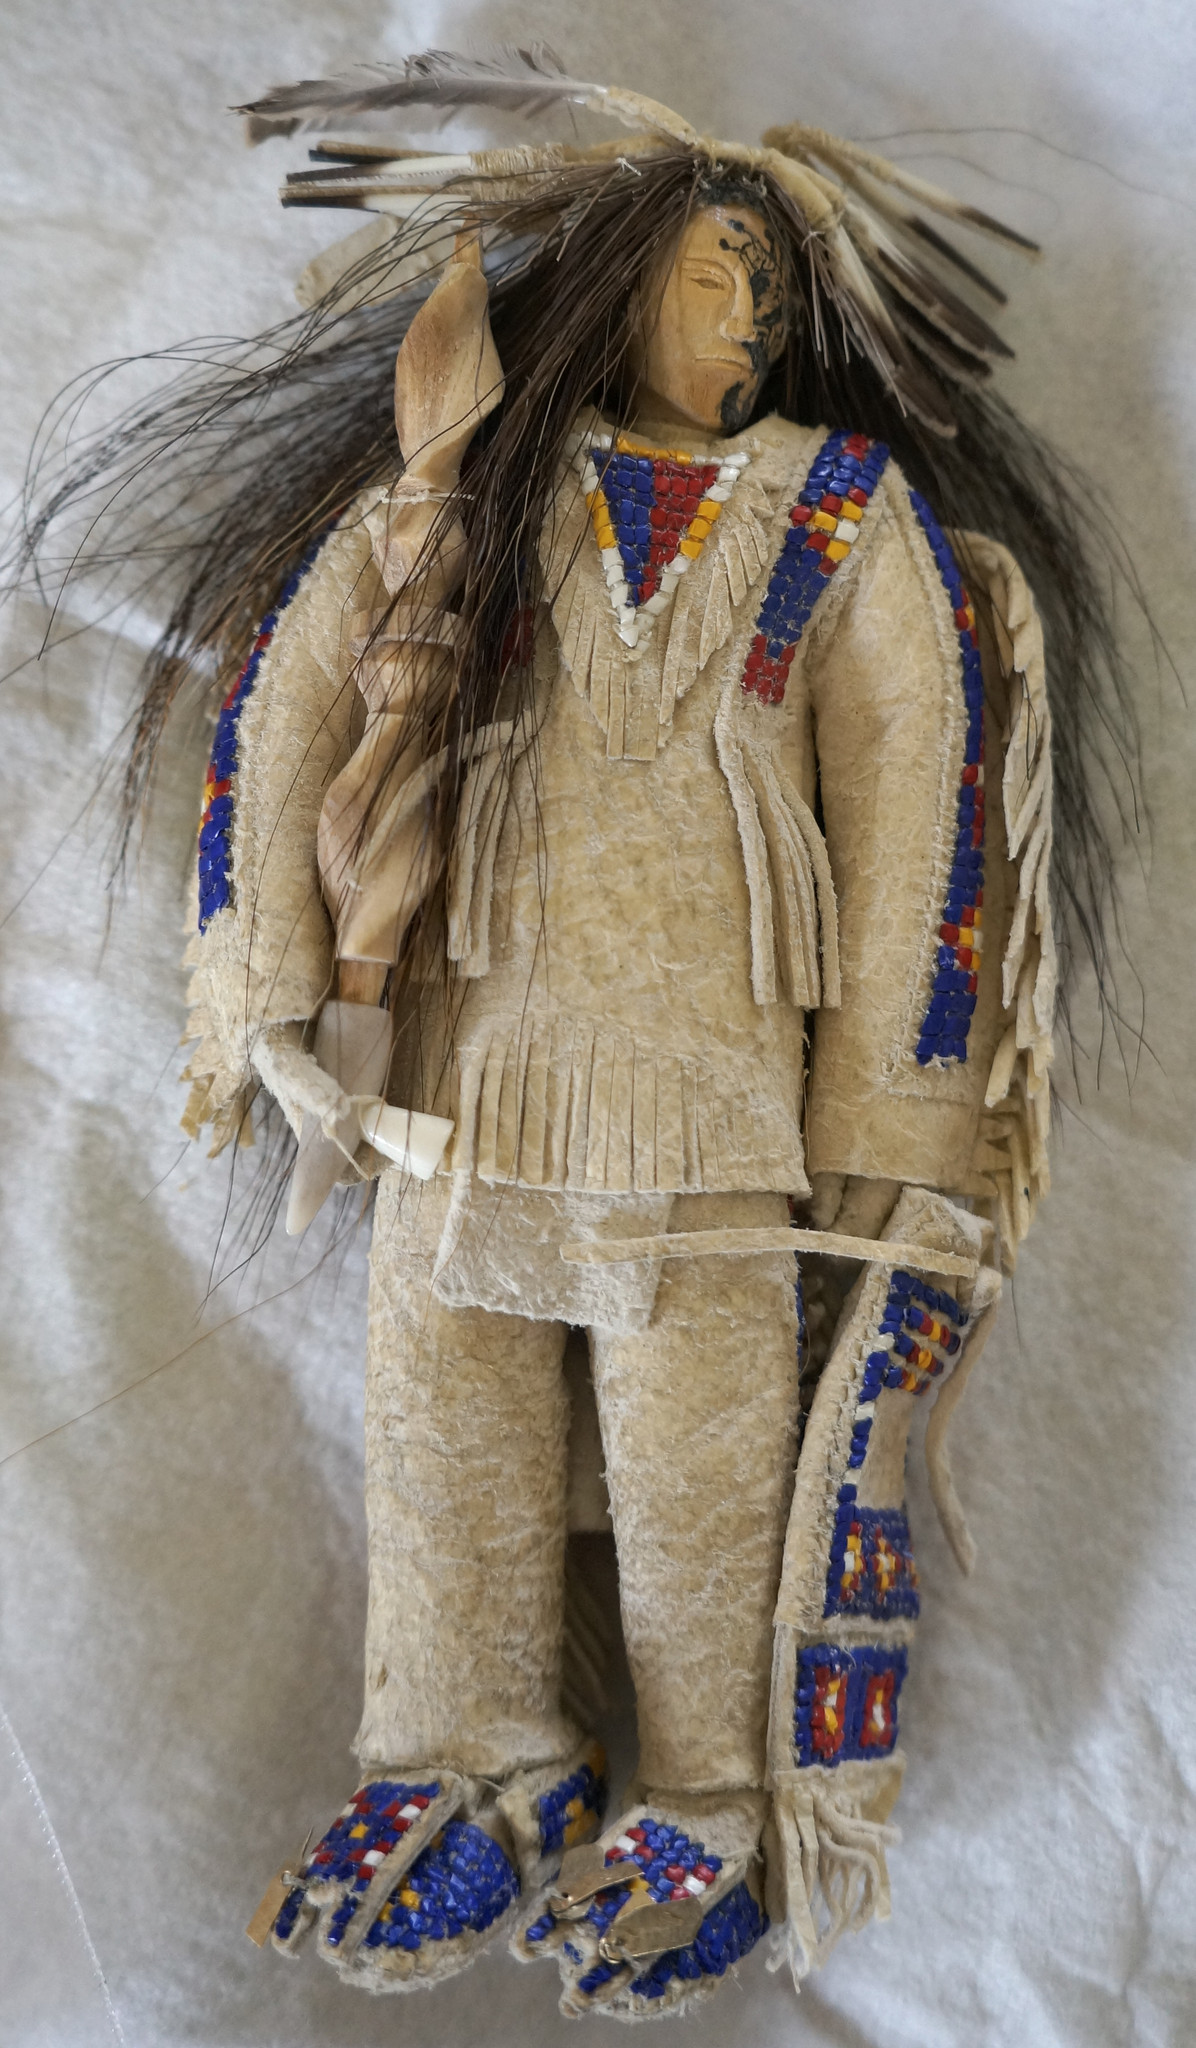 A traditional Lakota ceremonial doll made by Anthony Horse Road.